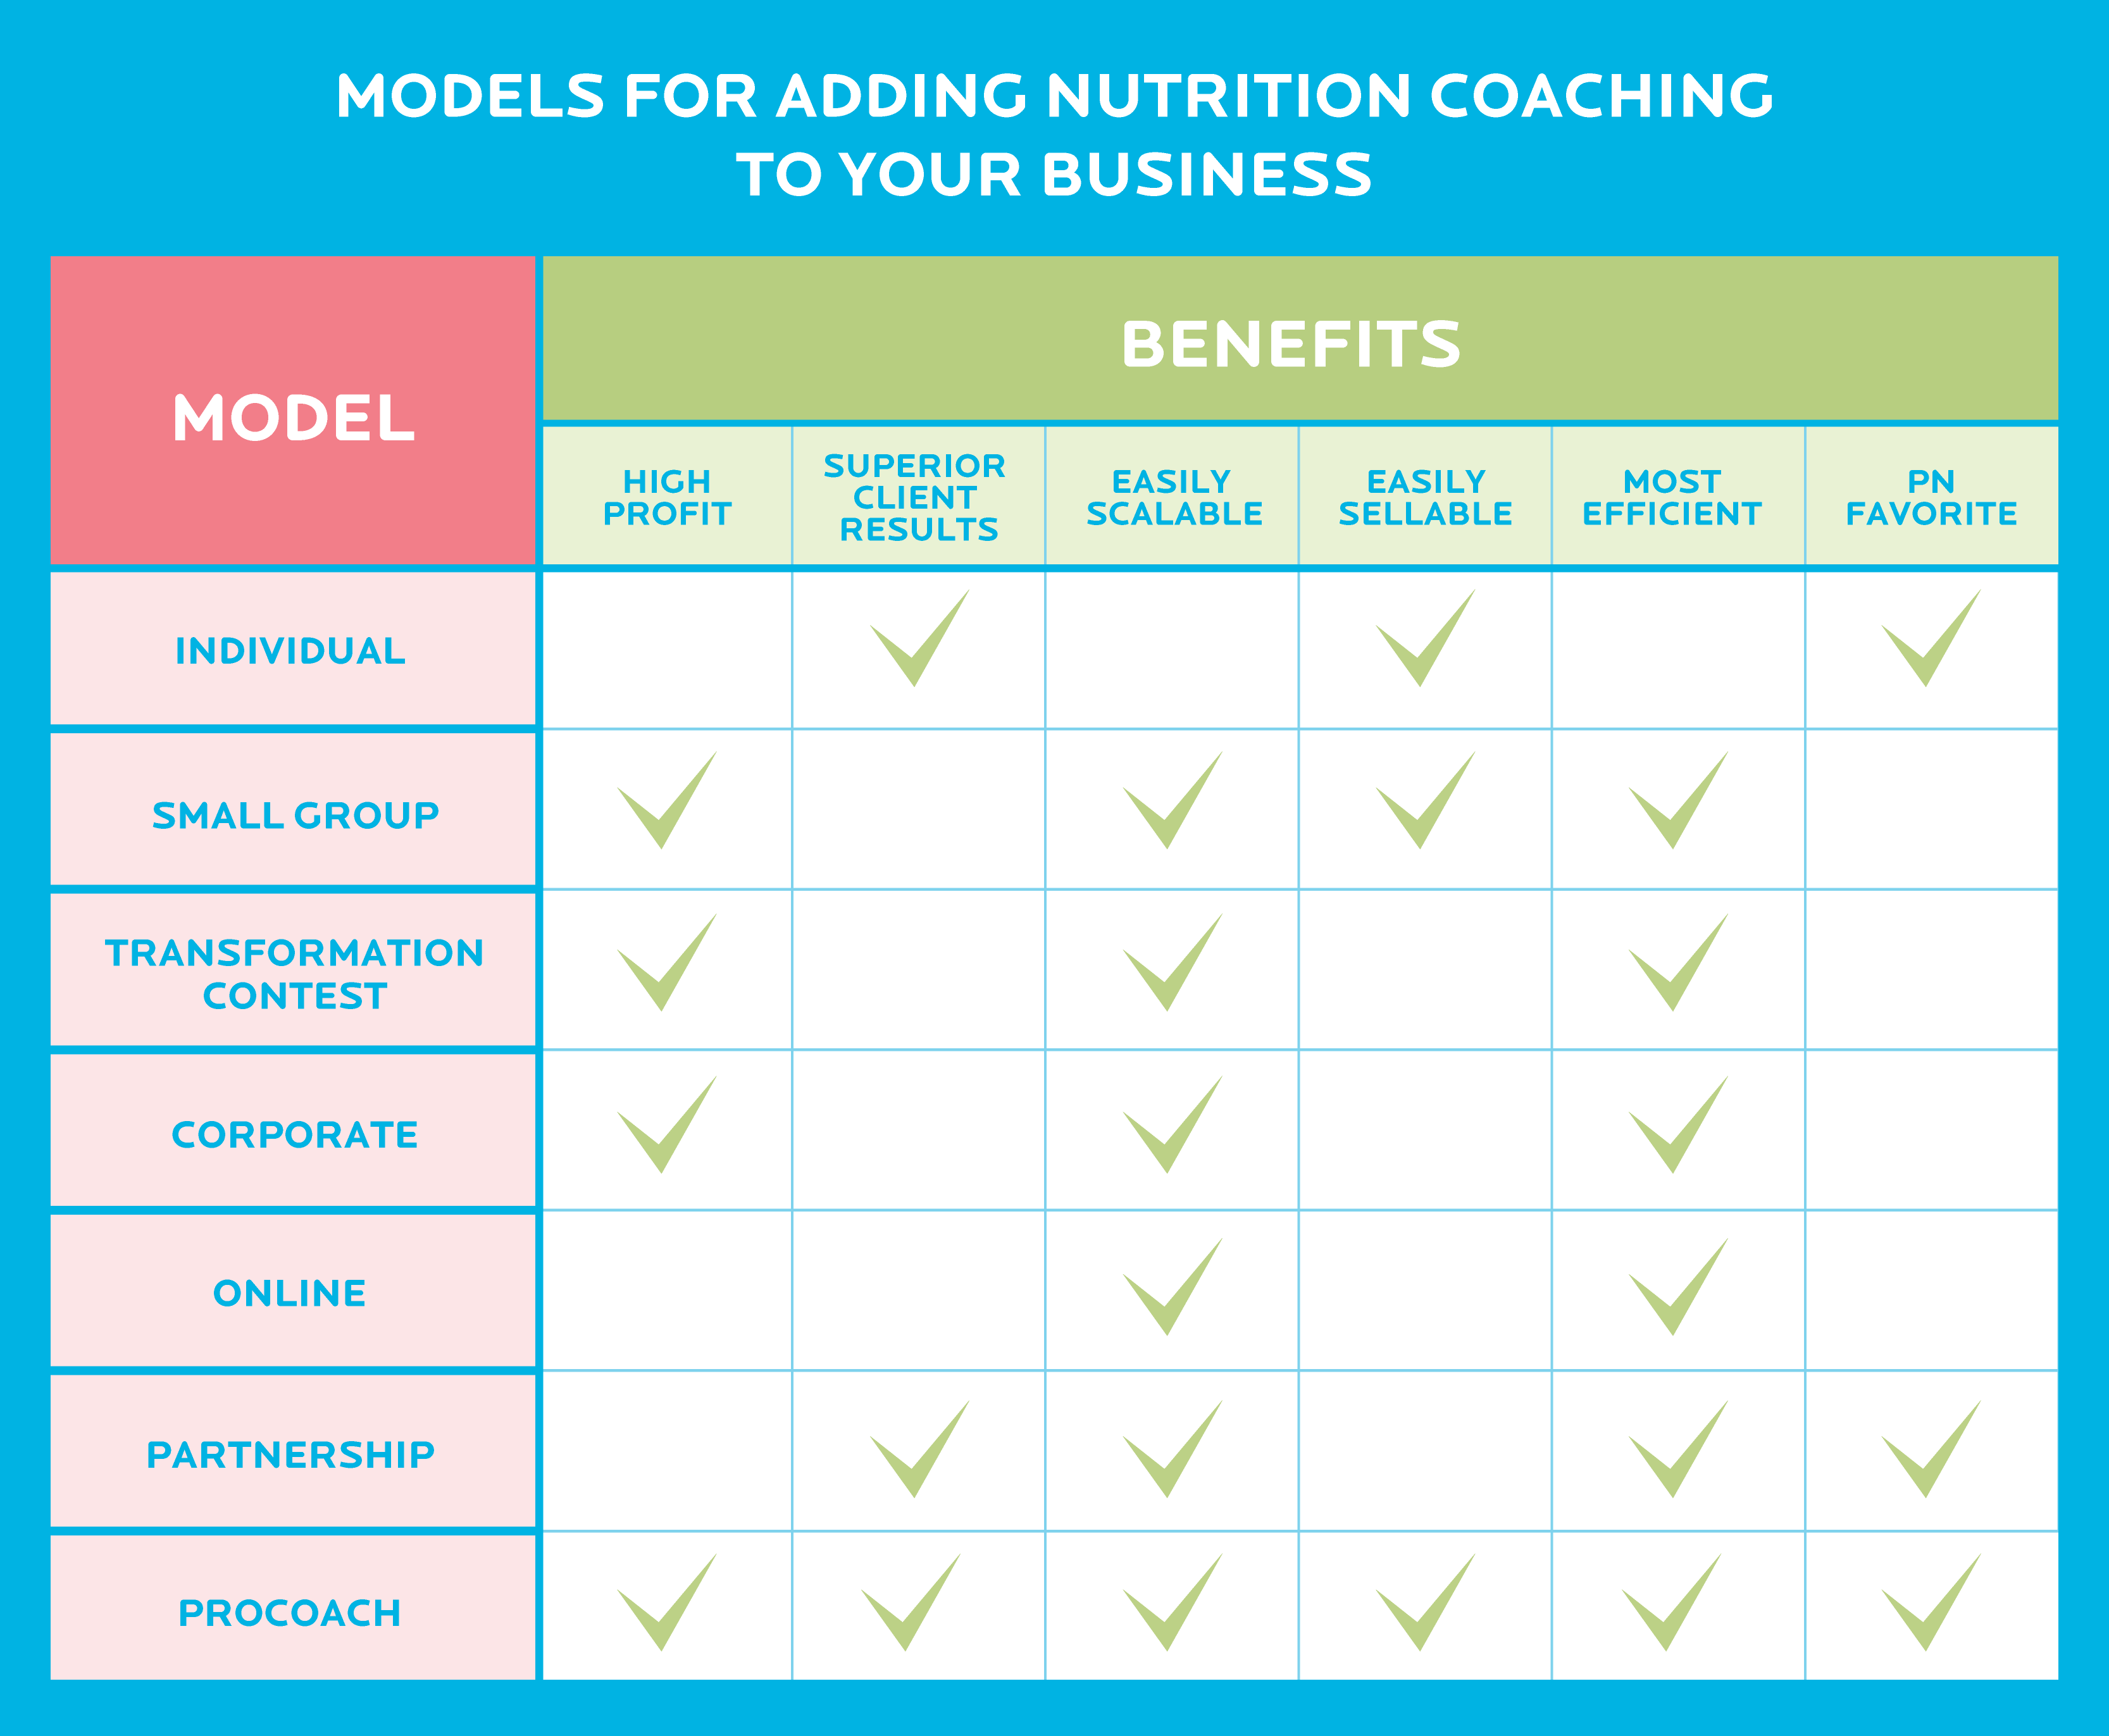 7 proven + profitable models for adding #nutrition coaching to your fitness or health business.